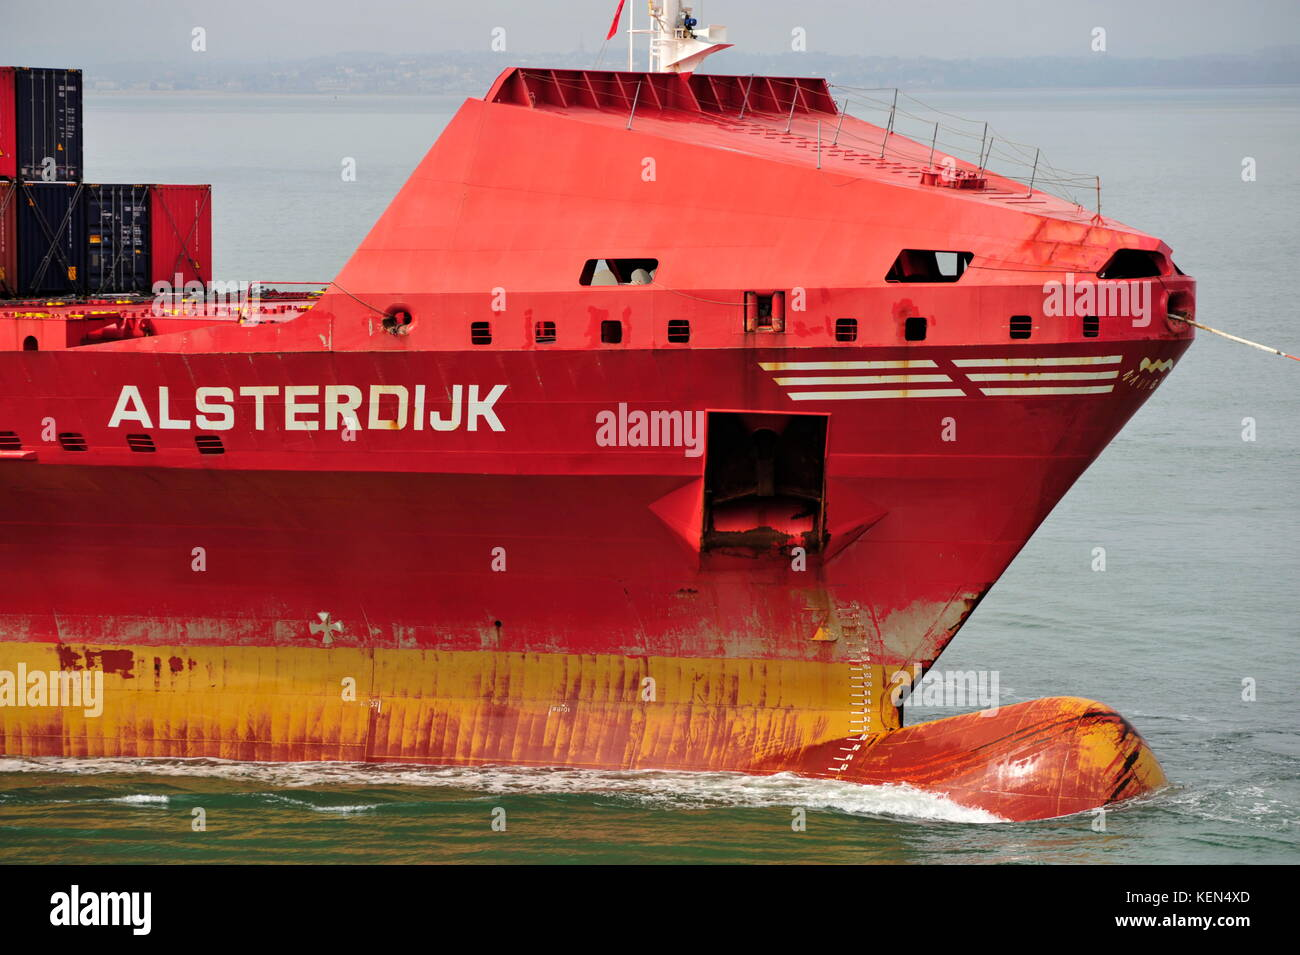 AJAXNETPHOTO. 24TH MAY, 2015. PORTSMOUTH, ENGLAND. - SHORT SEA CONTAINERSHIP ALSTERDIJK SHOWING BOW BREAKWATER AND Stock Photo